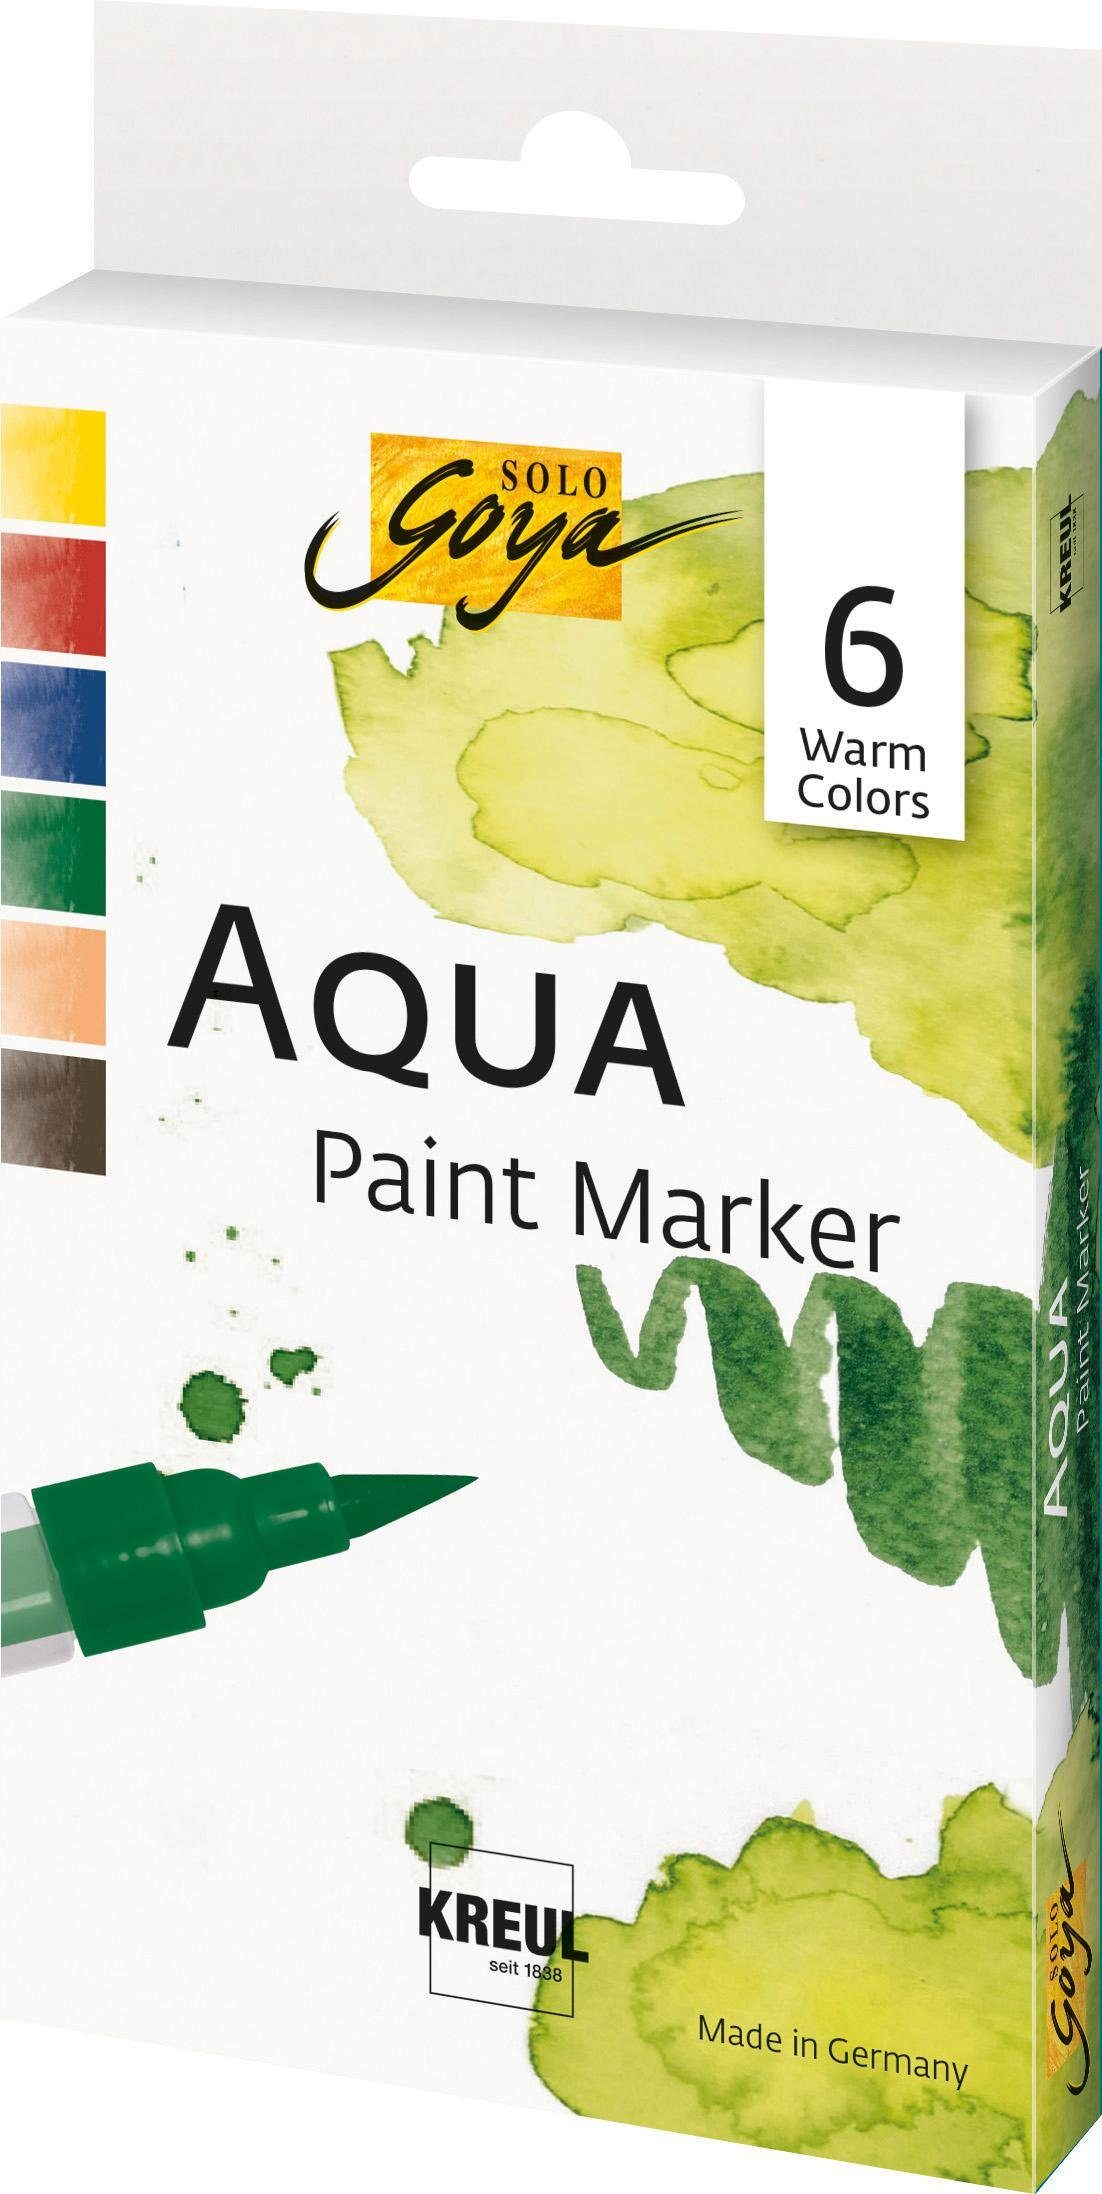 KREUL Aquarellfarben-Set, »SOLO GOYA Aqua Paint Marker Warm Colors«